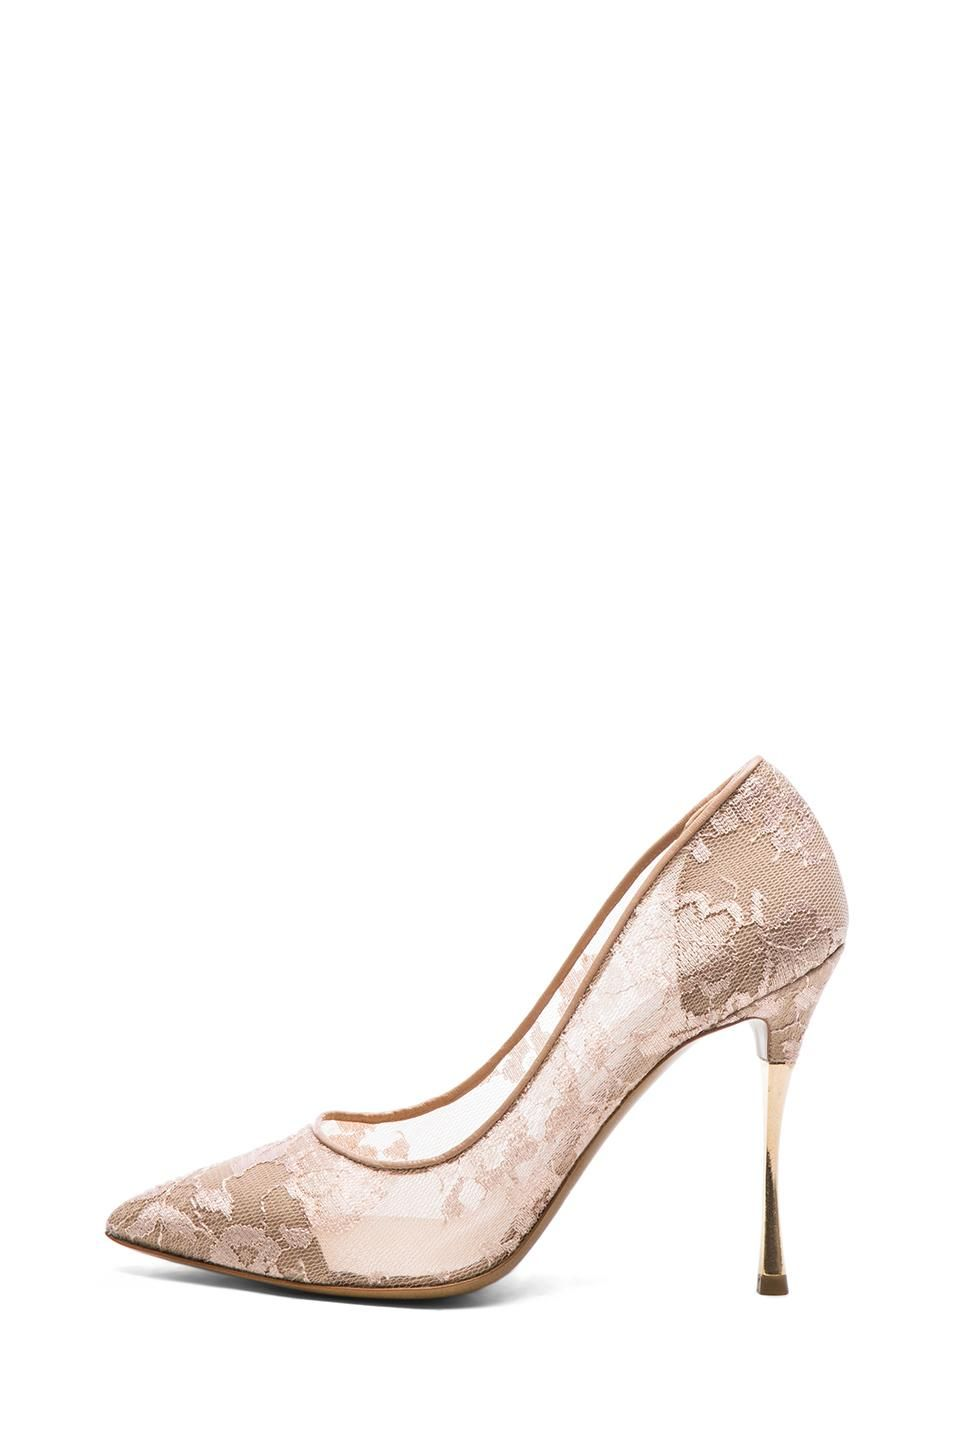 3cab035a16a Nude Bridal Shoes Lace Heels Pointy Toe Stiletto Heel Pumps in 2019 ...